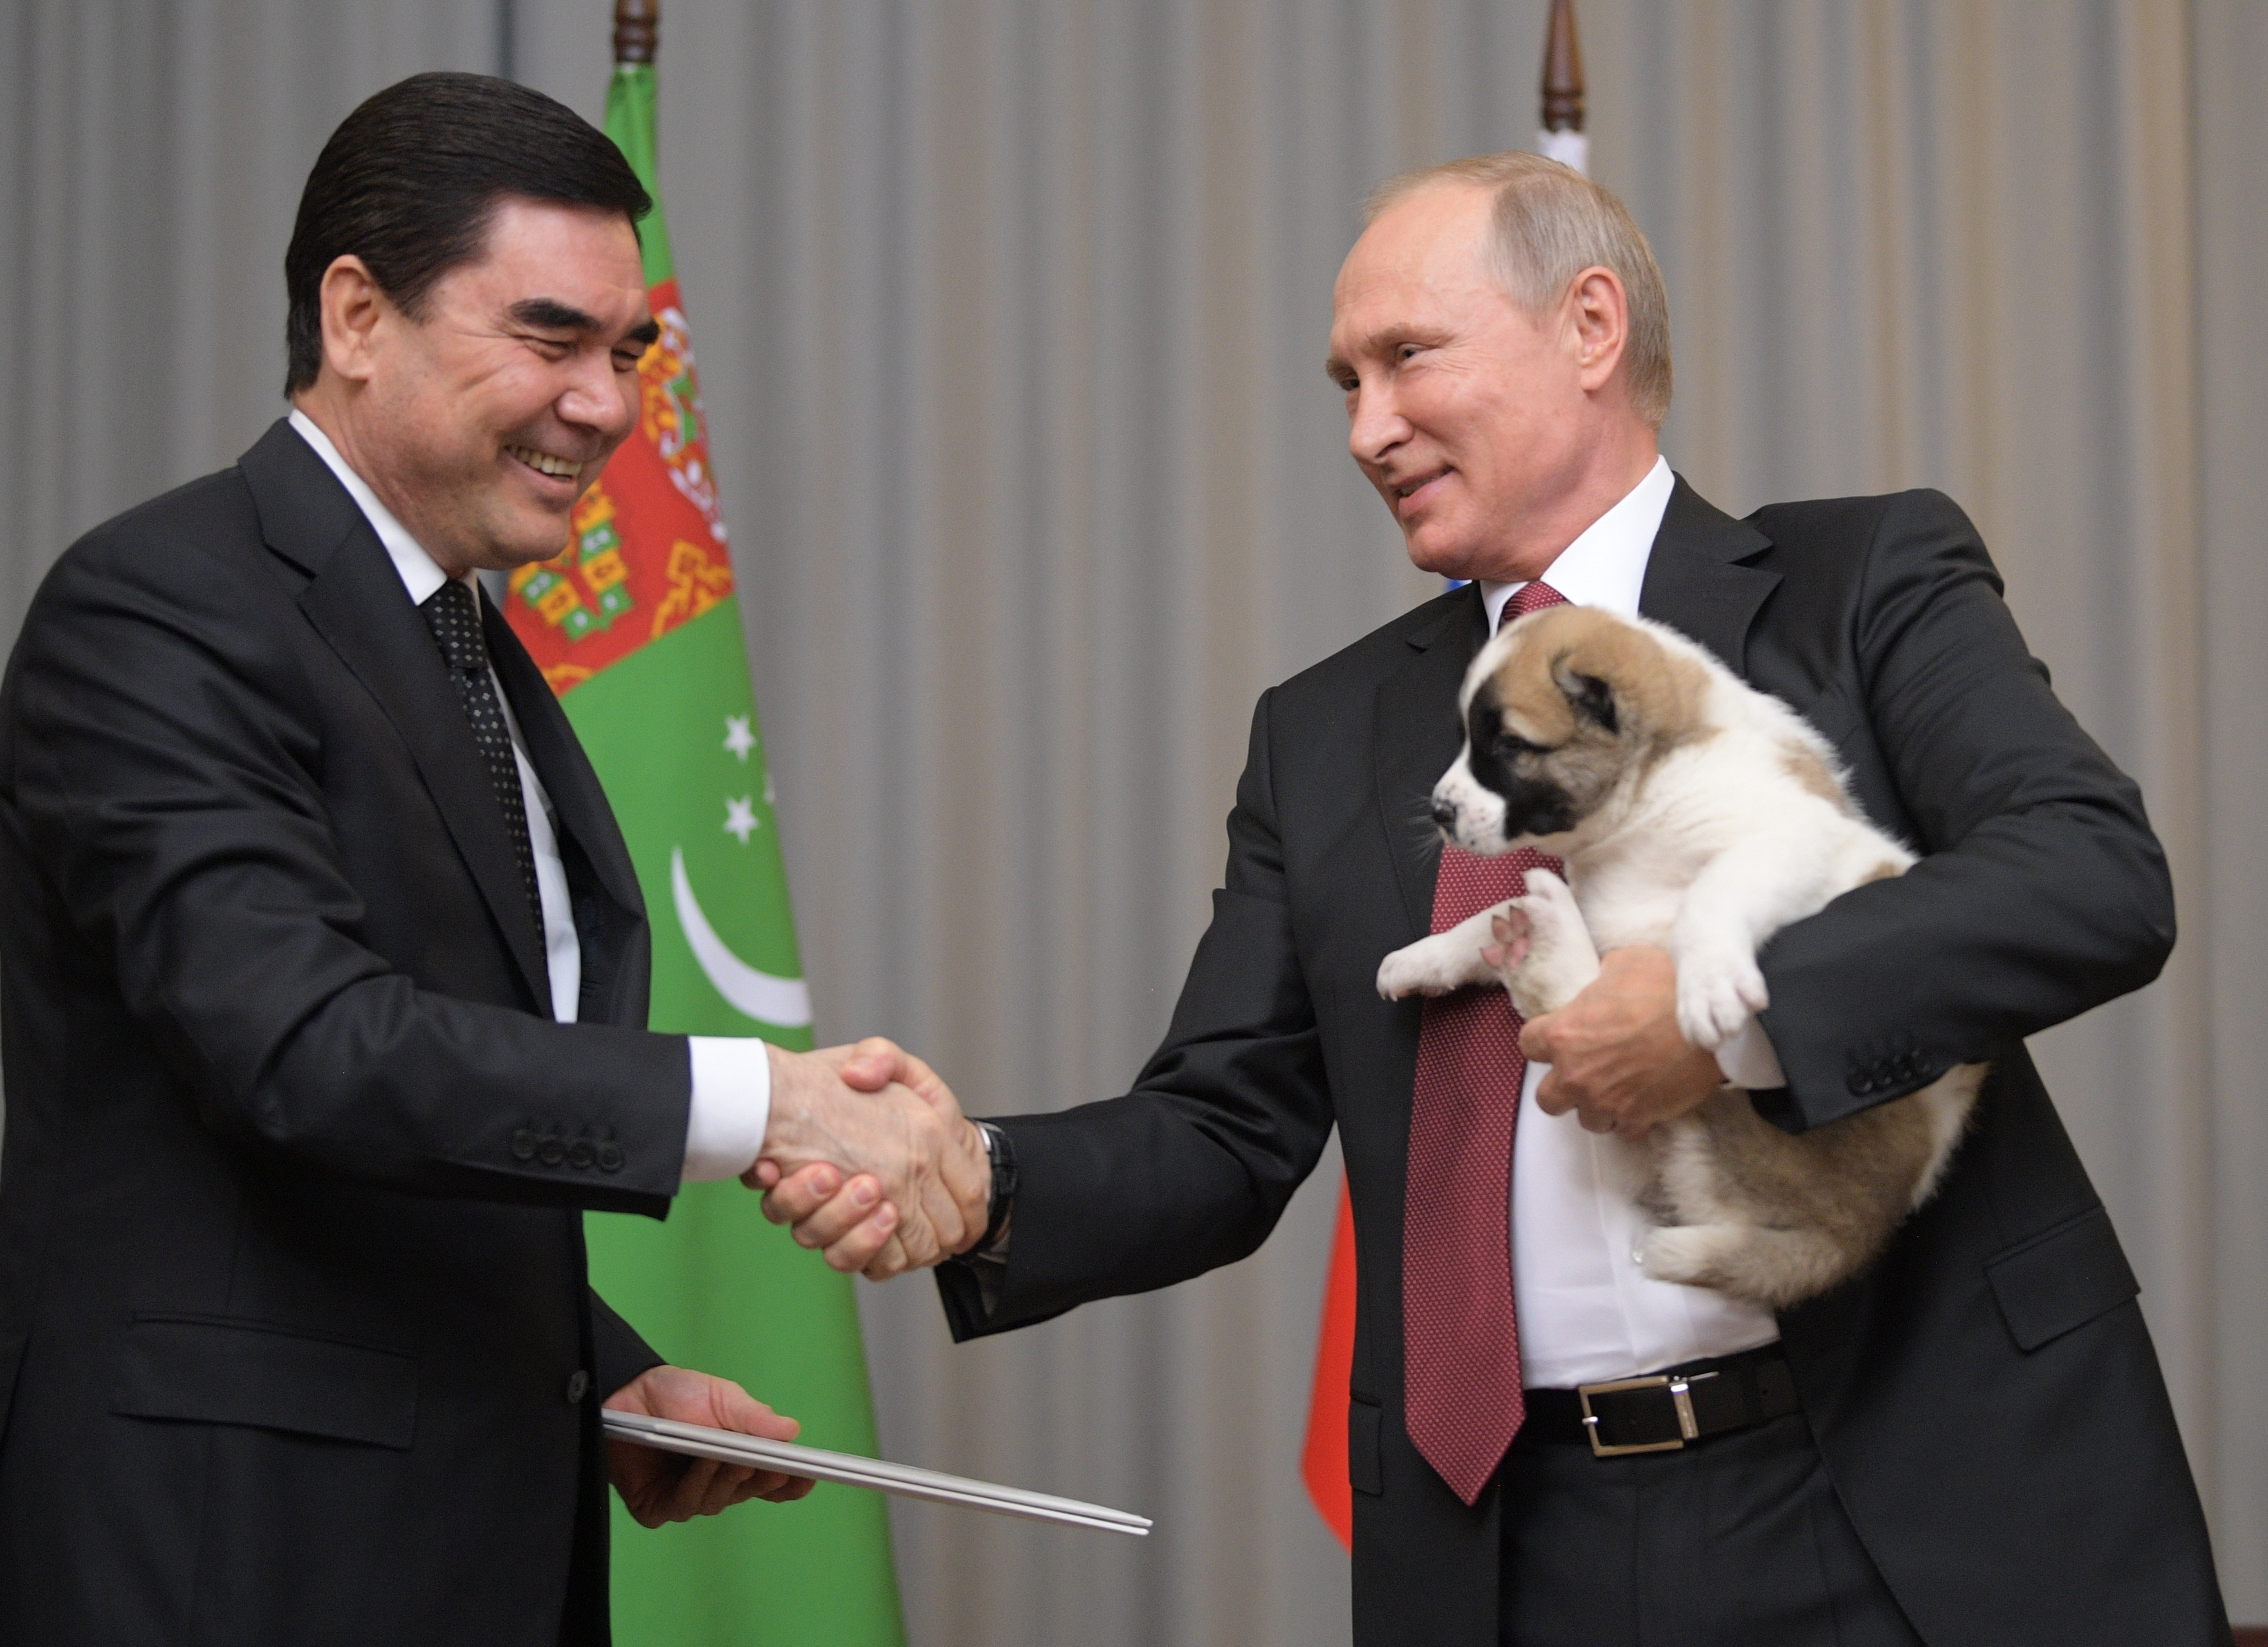 Turkmenistan's President Gurbanguly Berdymukhamedov, left, presents a puppy to Russian President Vladimir Putin during their meeting in the Bocharov Ruchei residence in the Black Sea resort of Sochi, Russia, Wednesday, Oct. 11, 2017. The presidents met at the sidelines of a summit of leaders of ex-Soviet nations in Sochi. (Alexei Druzhinin/Sputnik, Kremlin Pool Photo via AP)